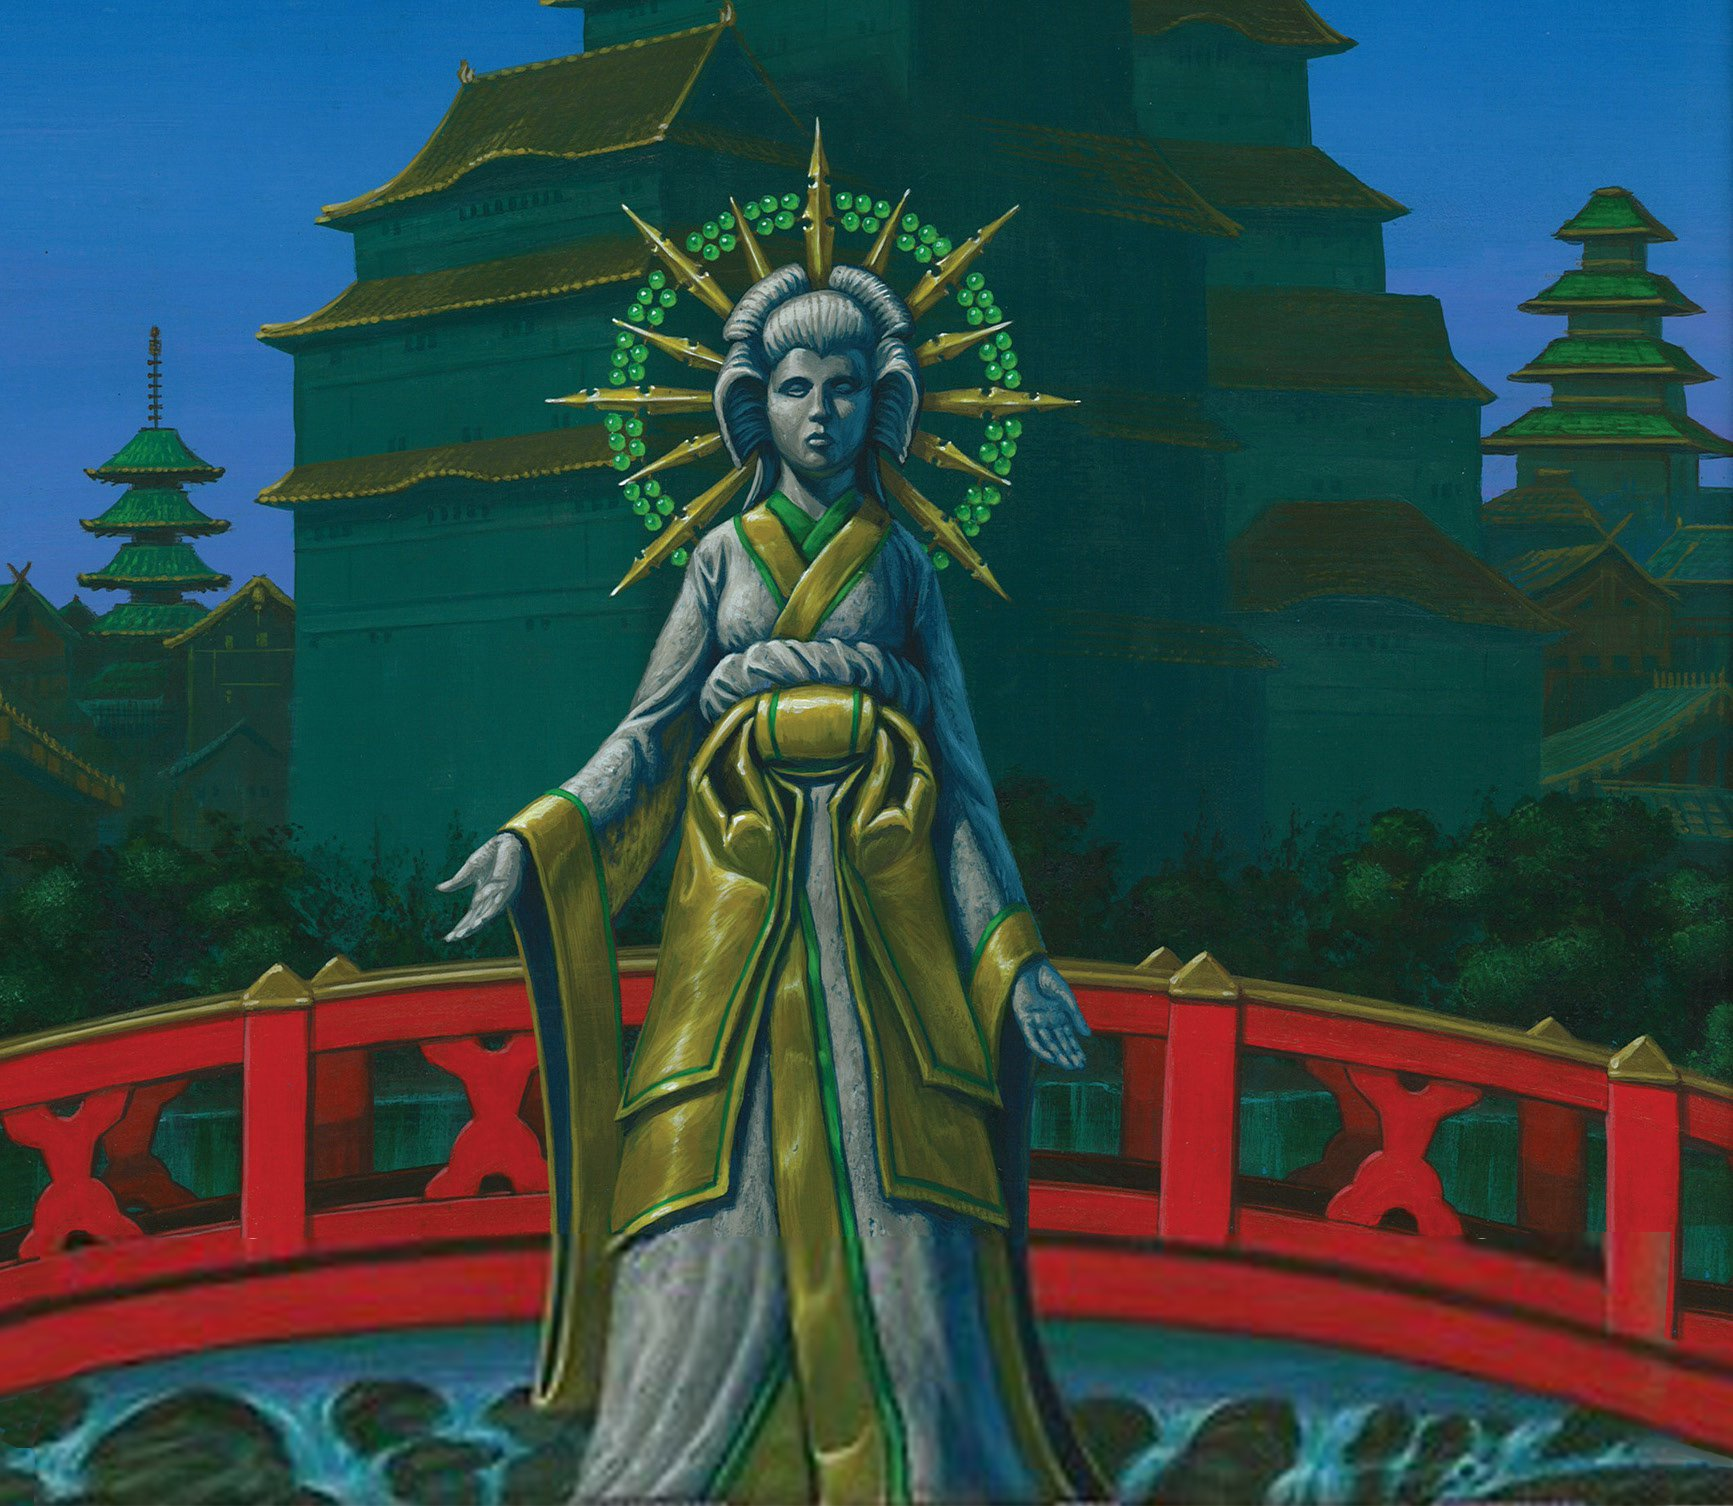 File:Shrine of Lady Sun.jpg